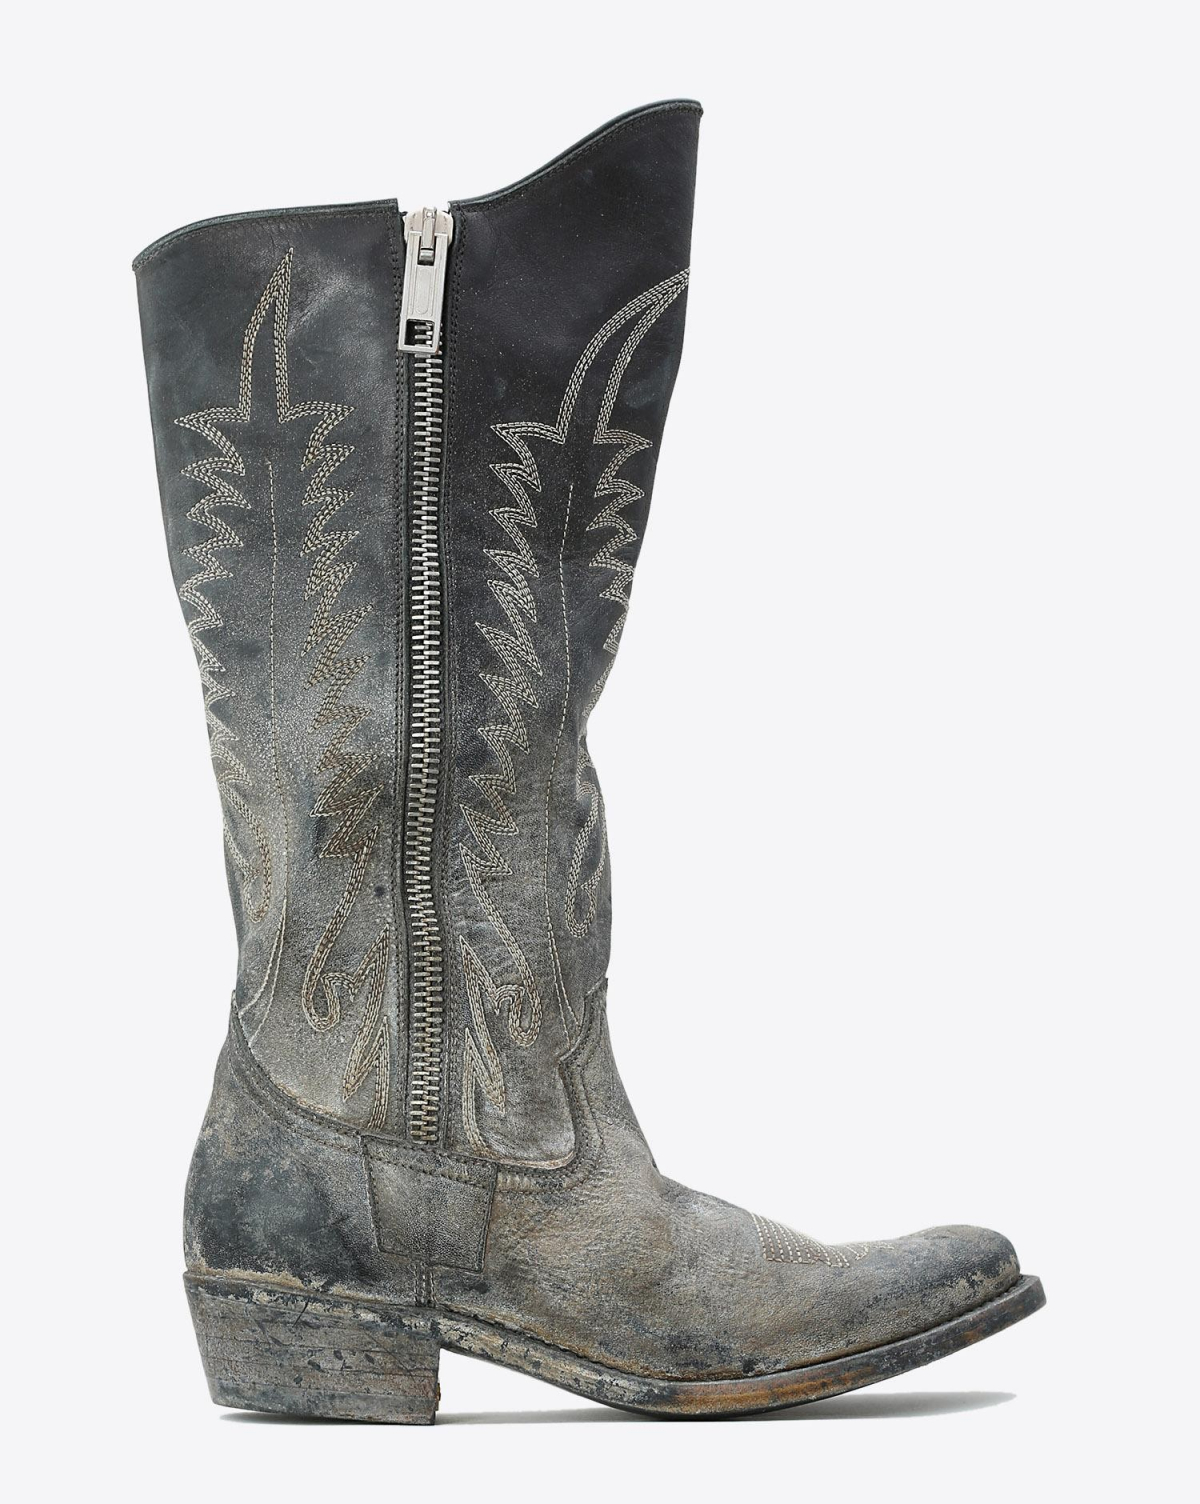 Golden Goose Woman Chaussures Pré-Collection Boots Golden Zip Black Leather Old